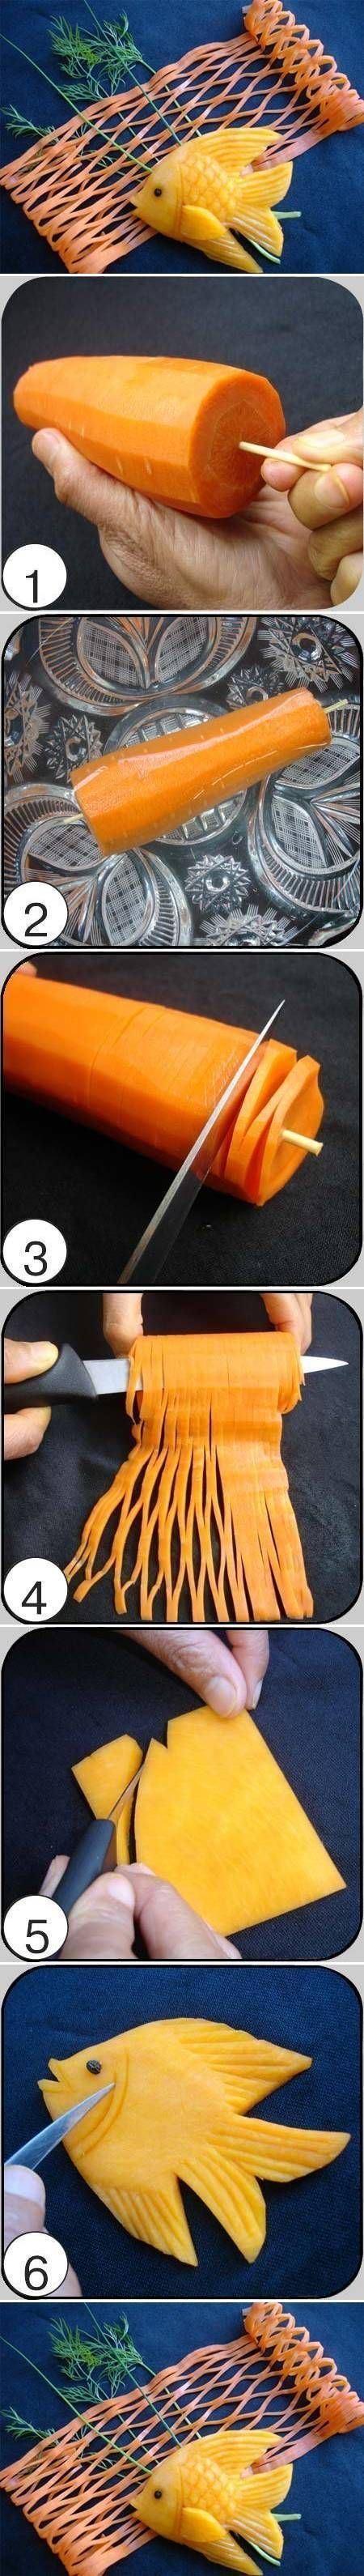 DIY Carrot Fish and Net DIY Projects